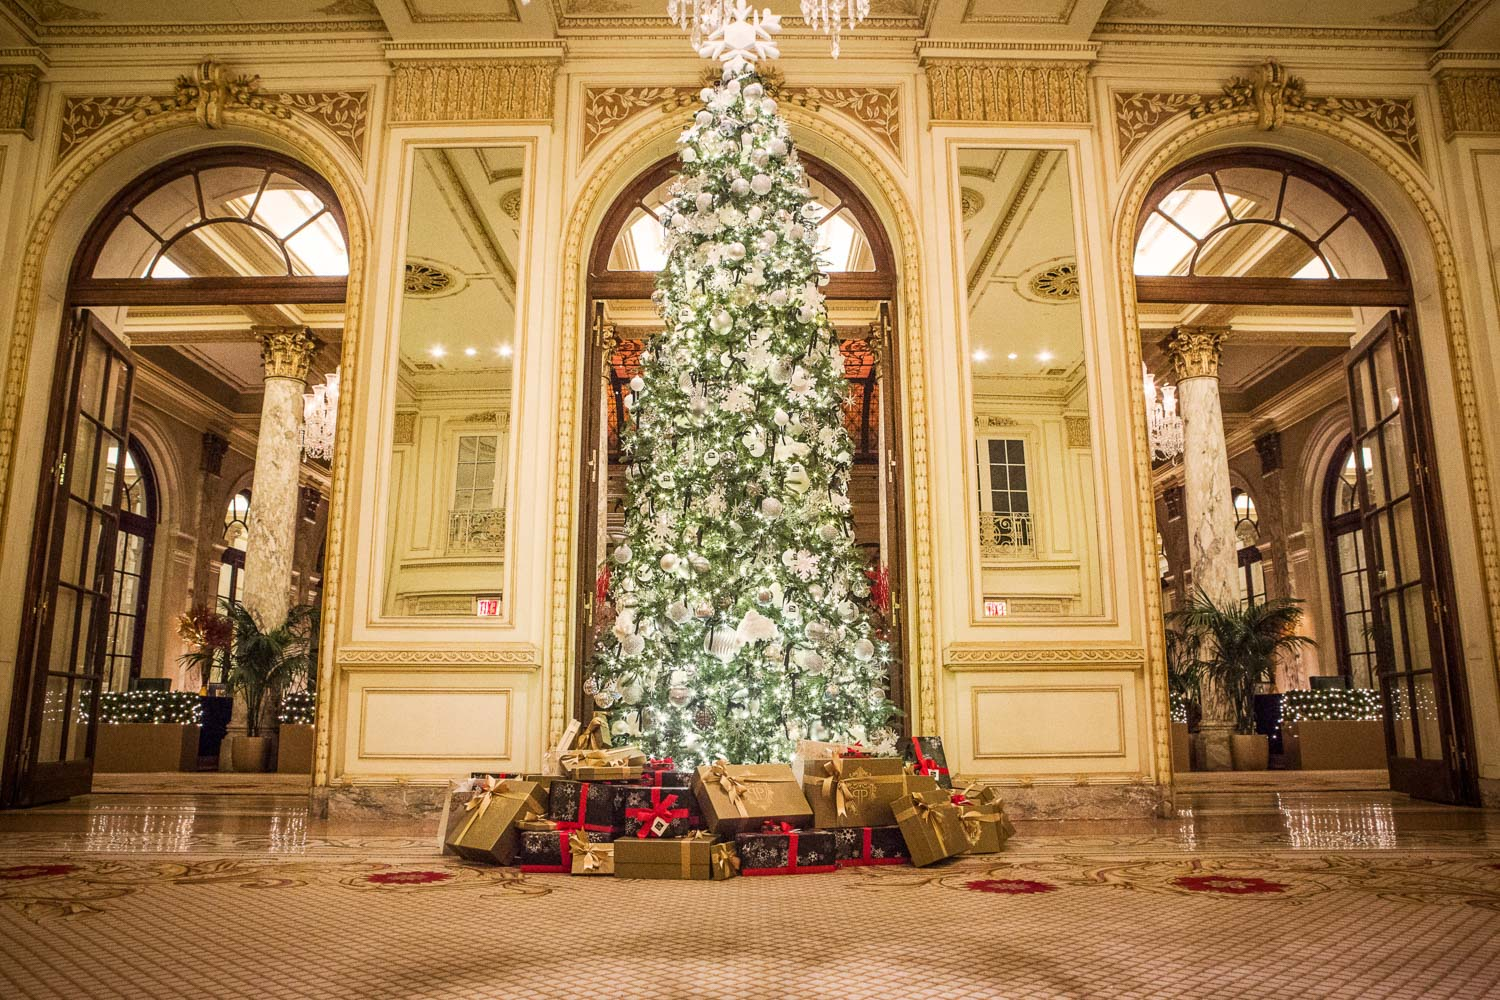 The Plaza Hotel in New York City on Christmas